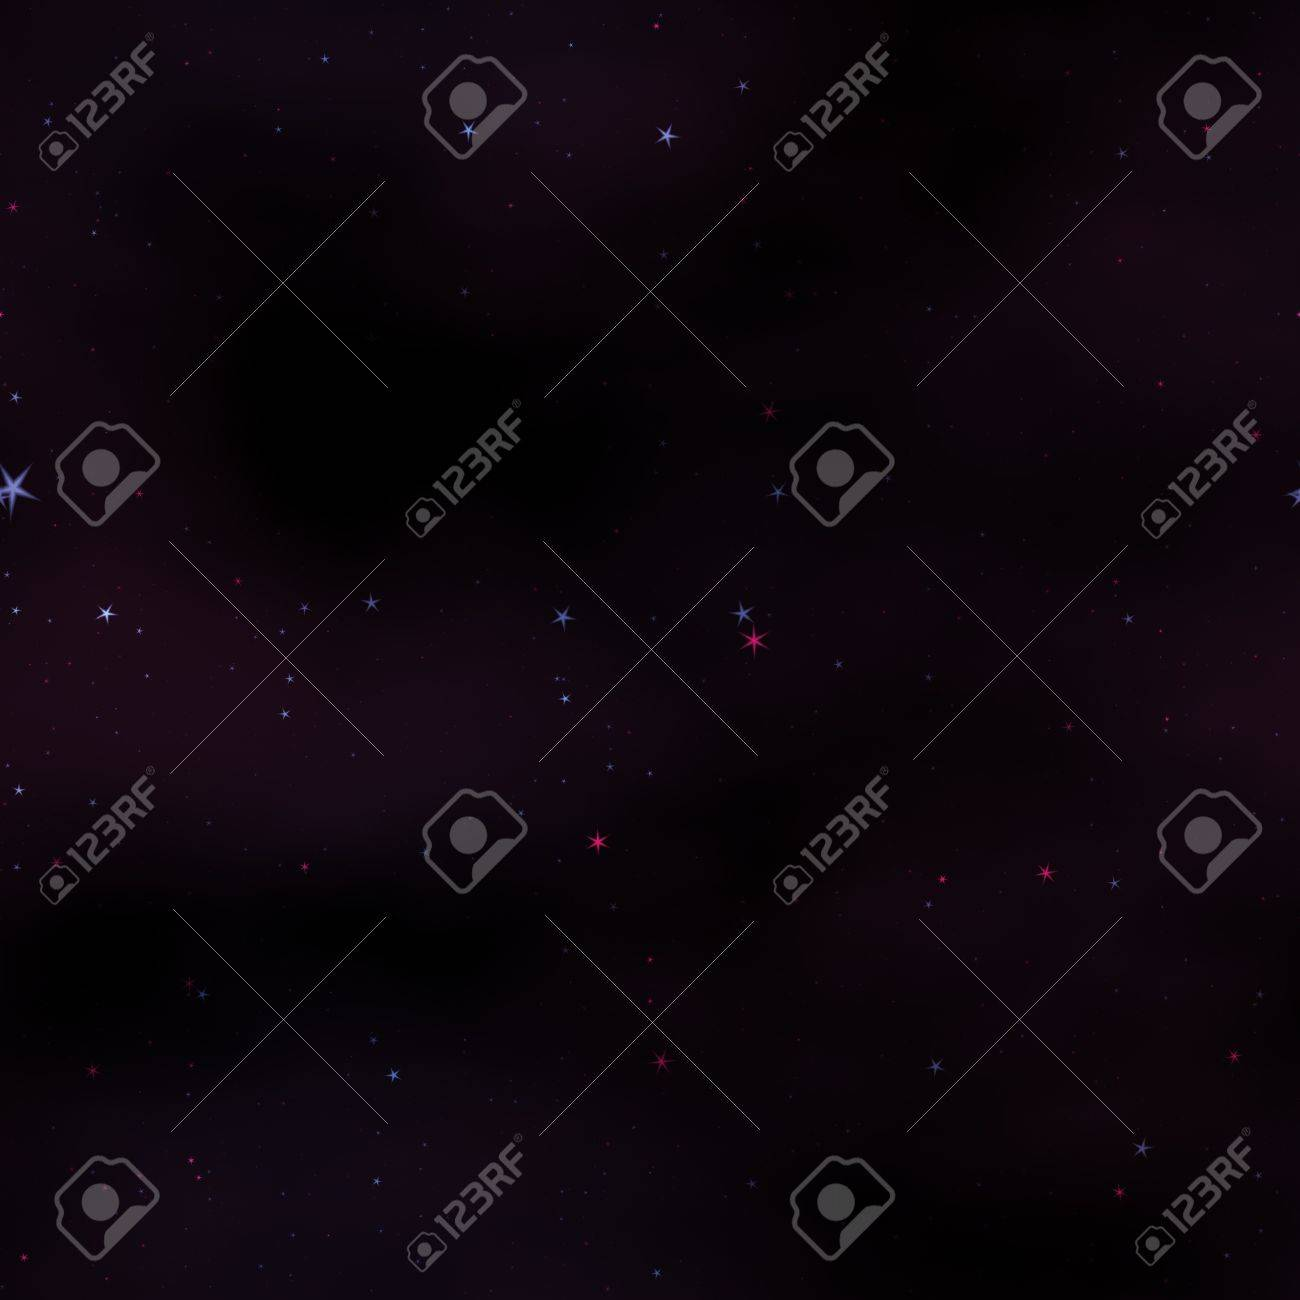 Star field in space and gas congestion background. Stock Photo - 20175451